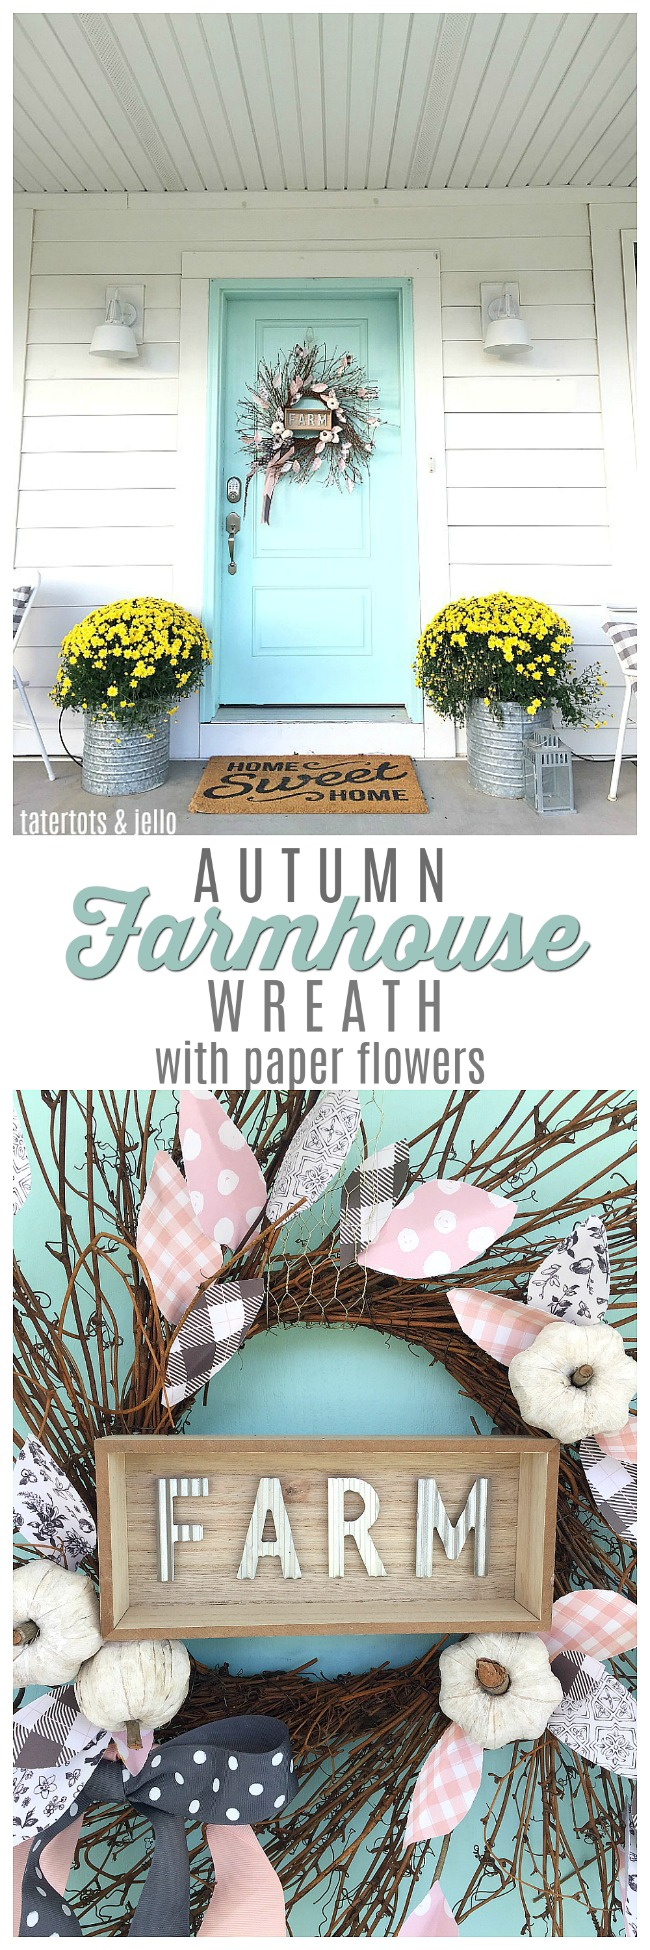 Farmhouse Autumn Wreath with paper flowers. Make a neutral farmhouse-style wreath with little pupkins and leaves made out of paper.